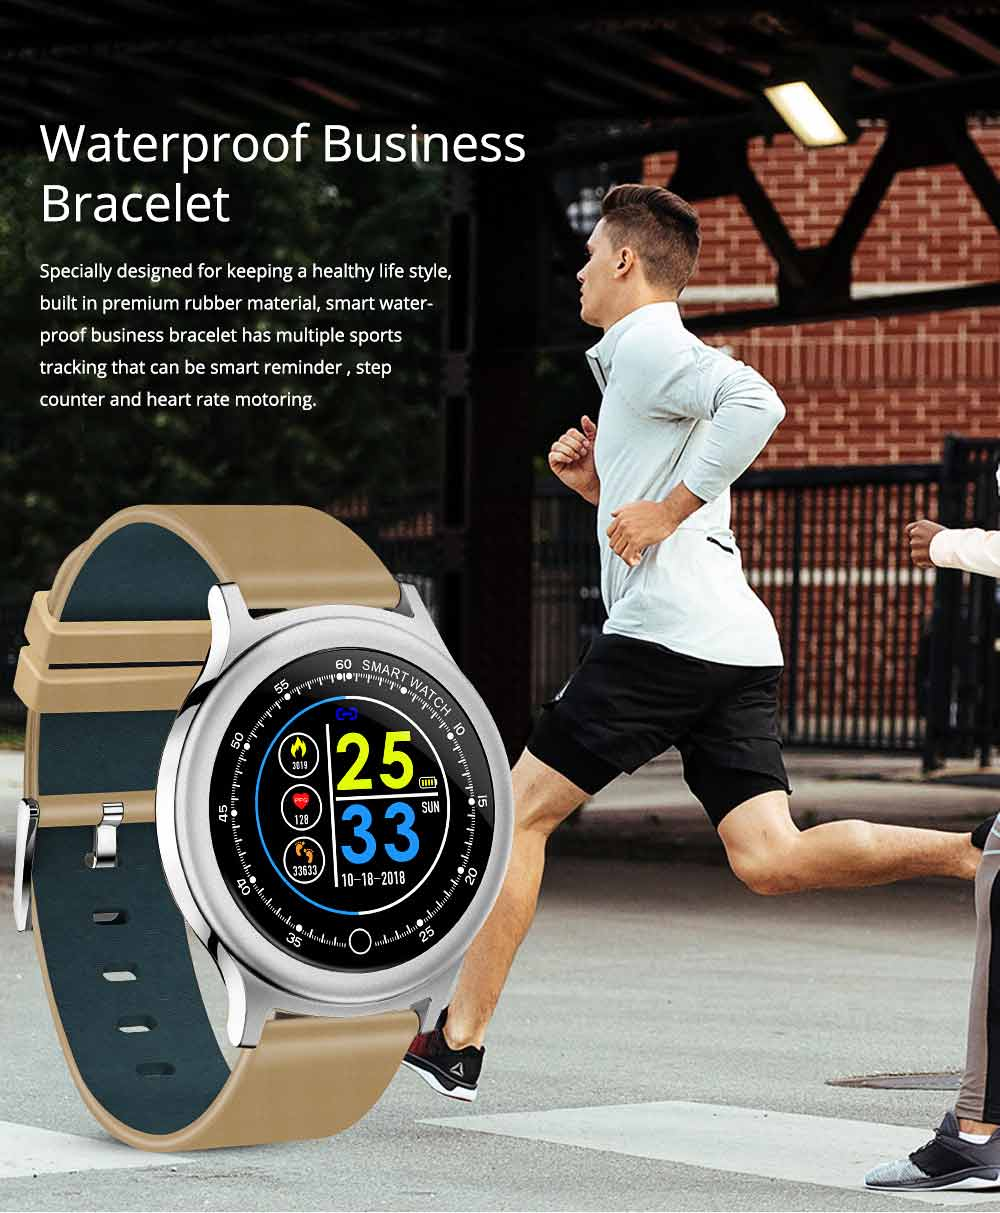 Smart Bracelet with Circle Color Screen for Heart Rate and Sleep Monitoring, Waterproof Business Bracelet 0